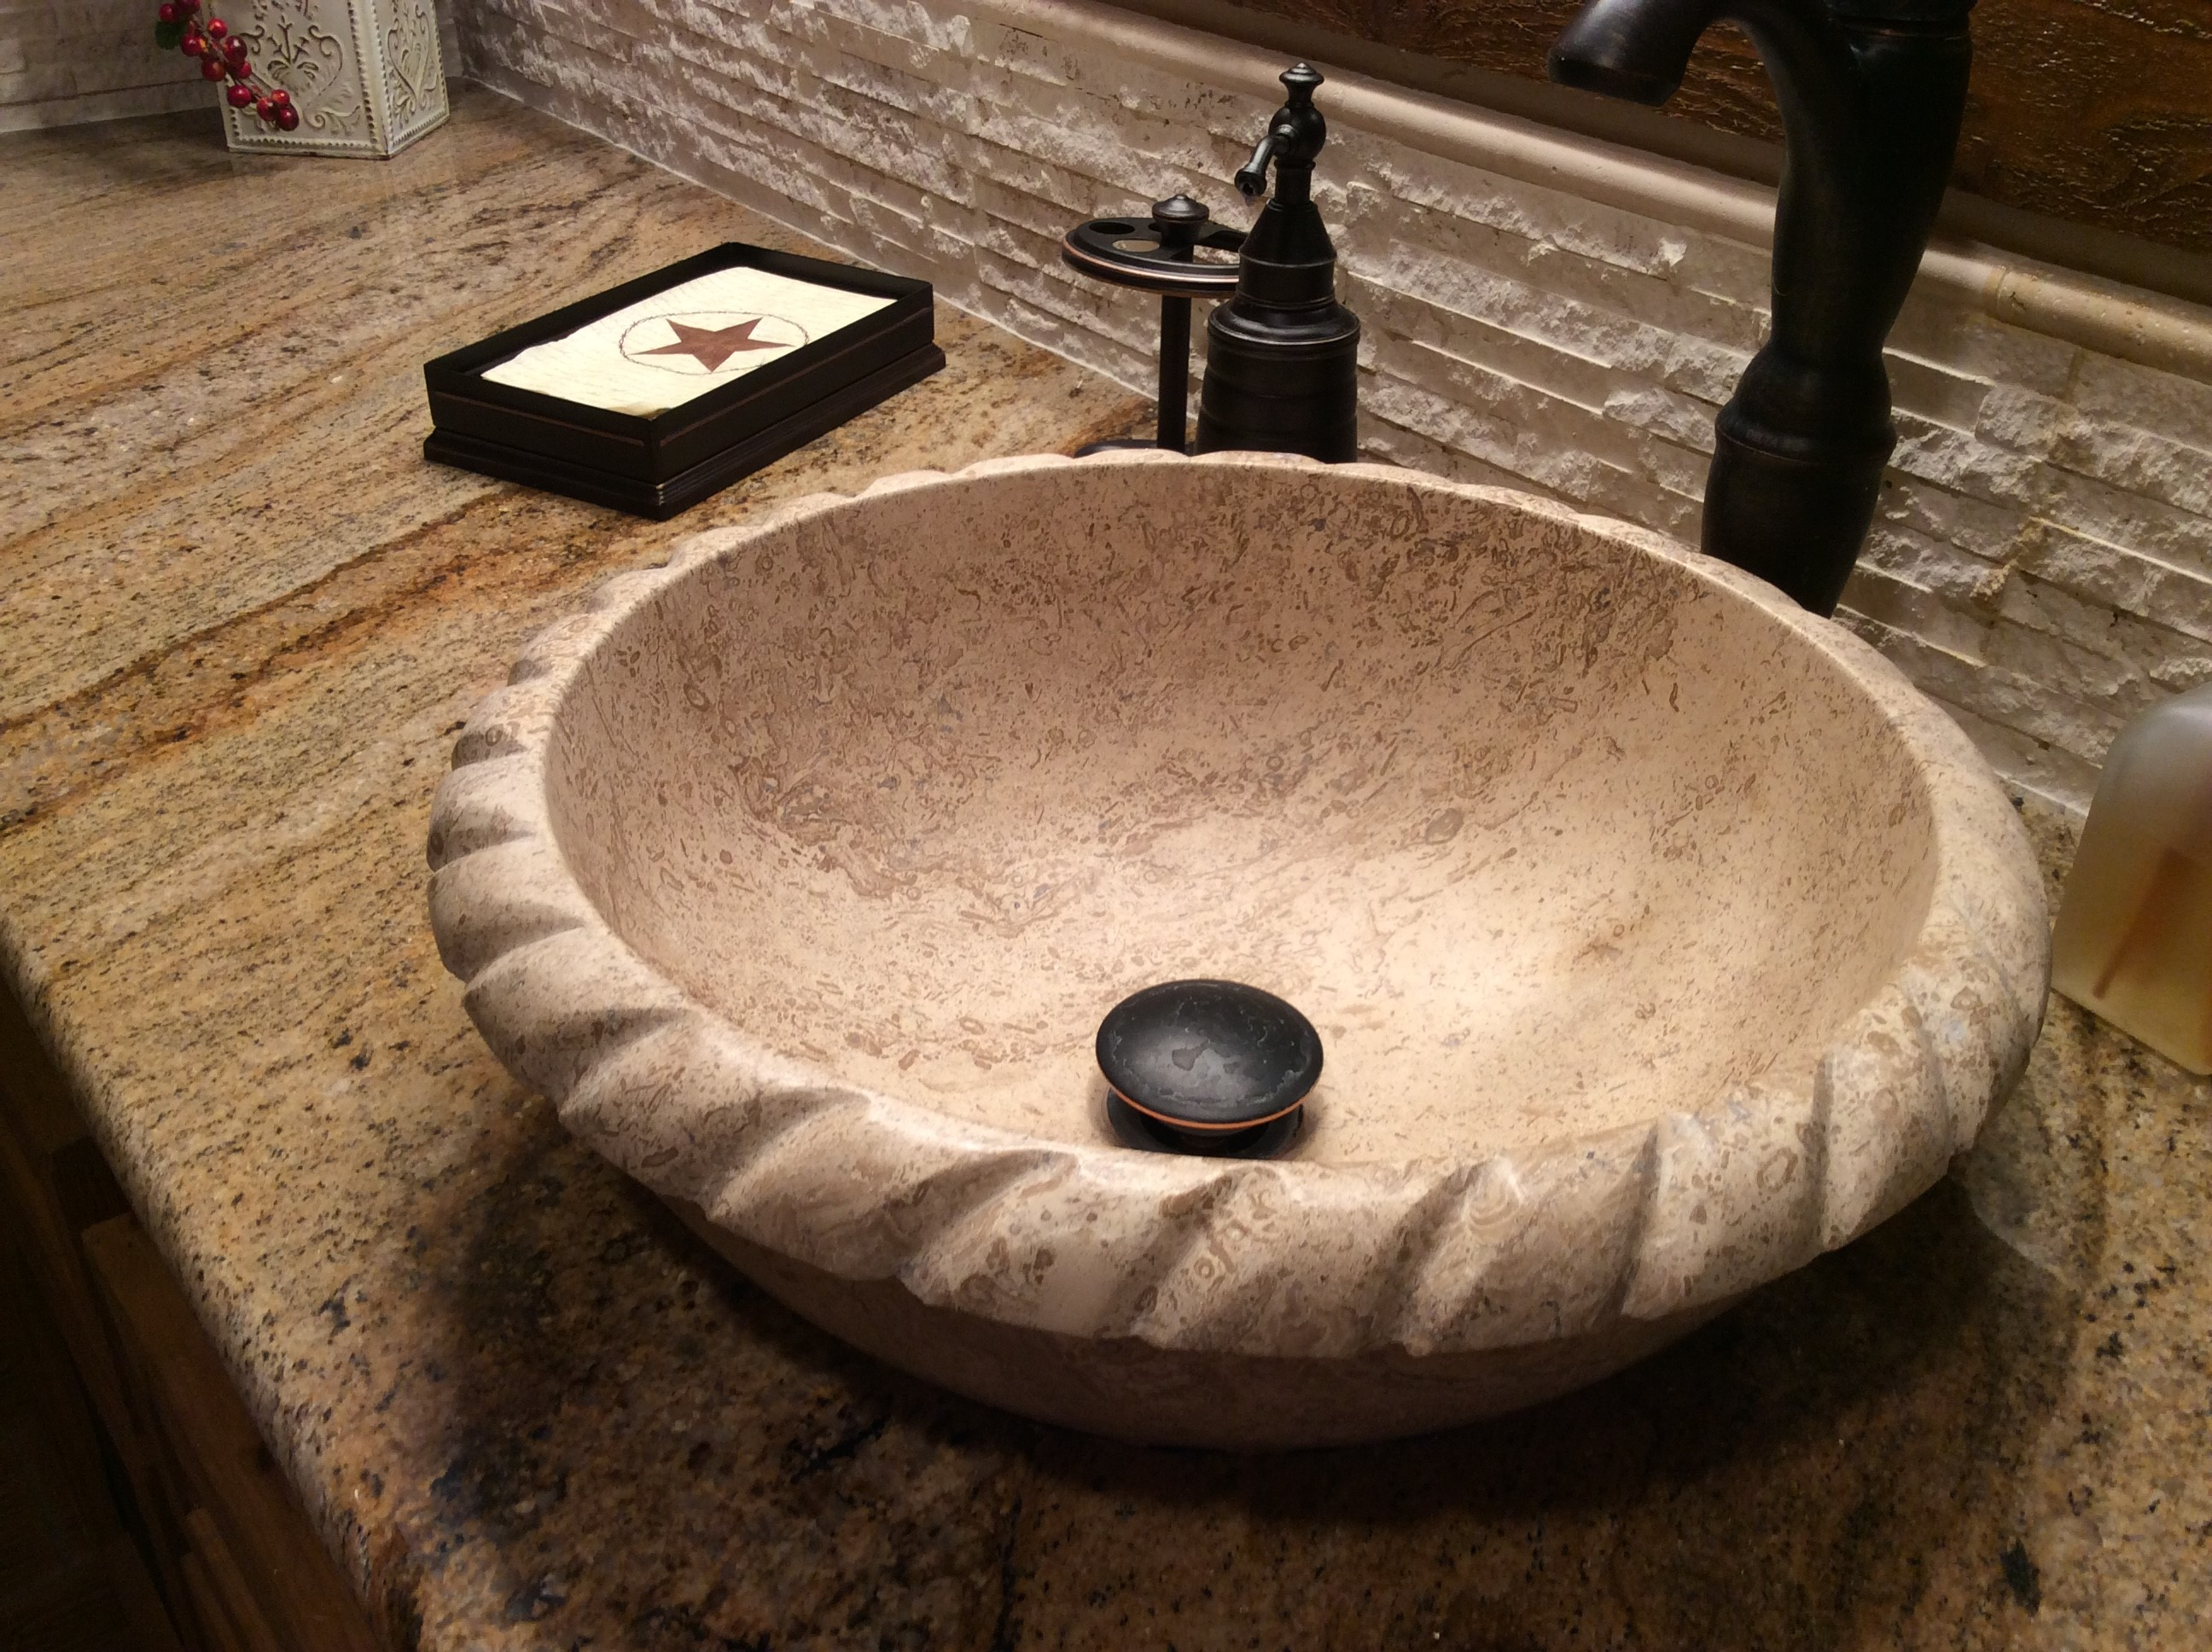 tashmart-rope-vessel-sink-installed1.jpg